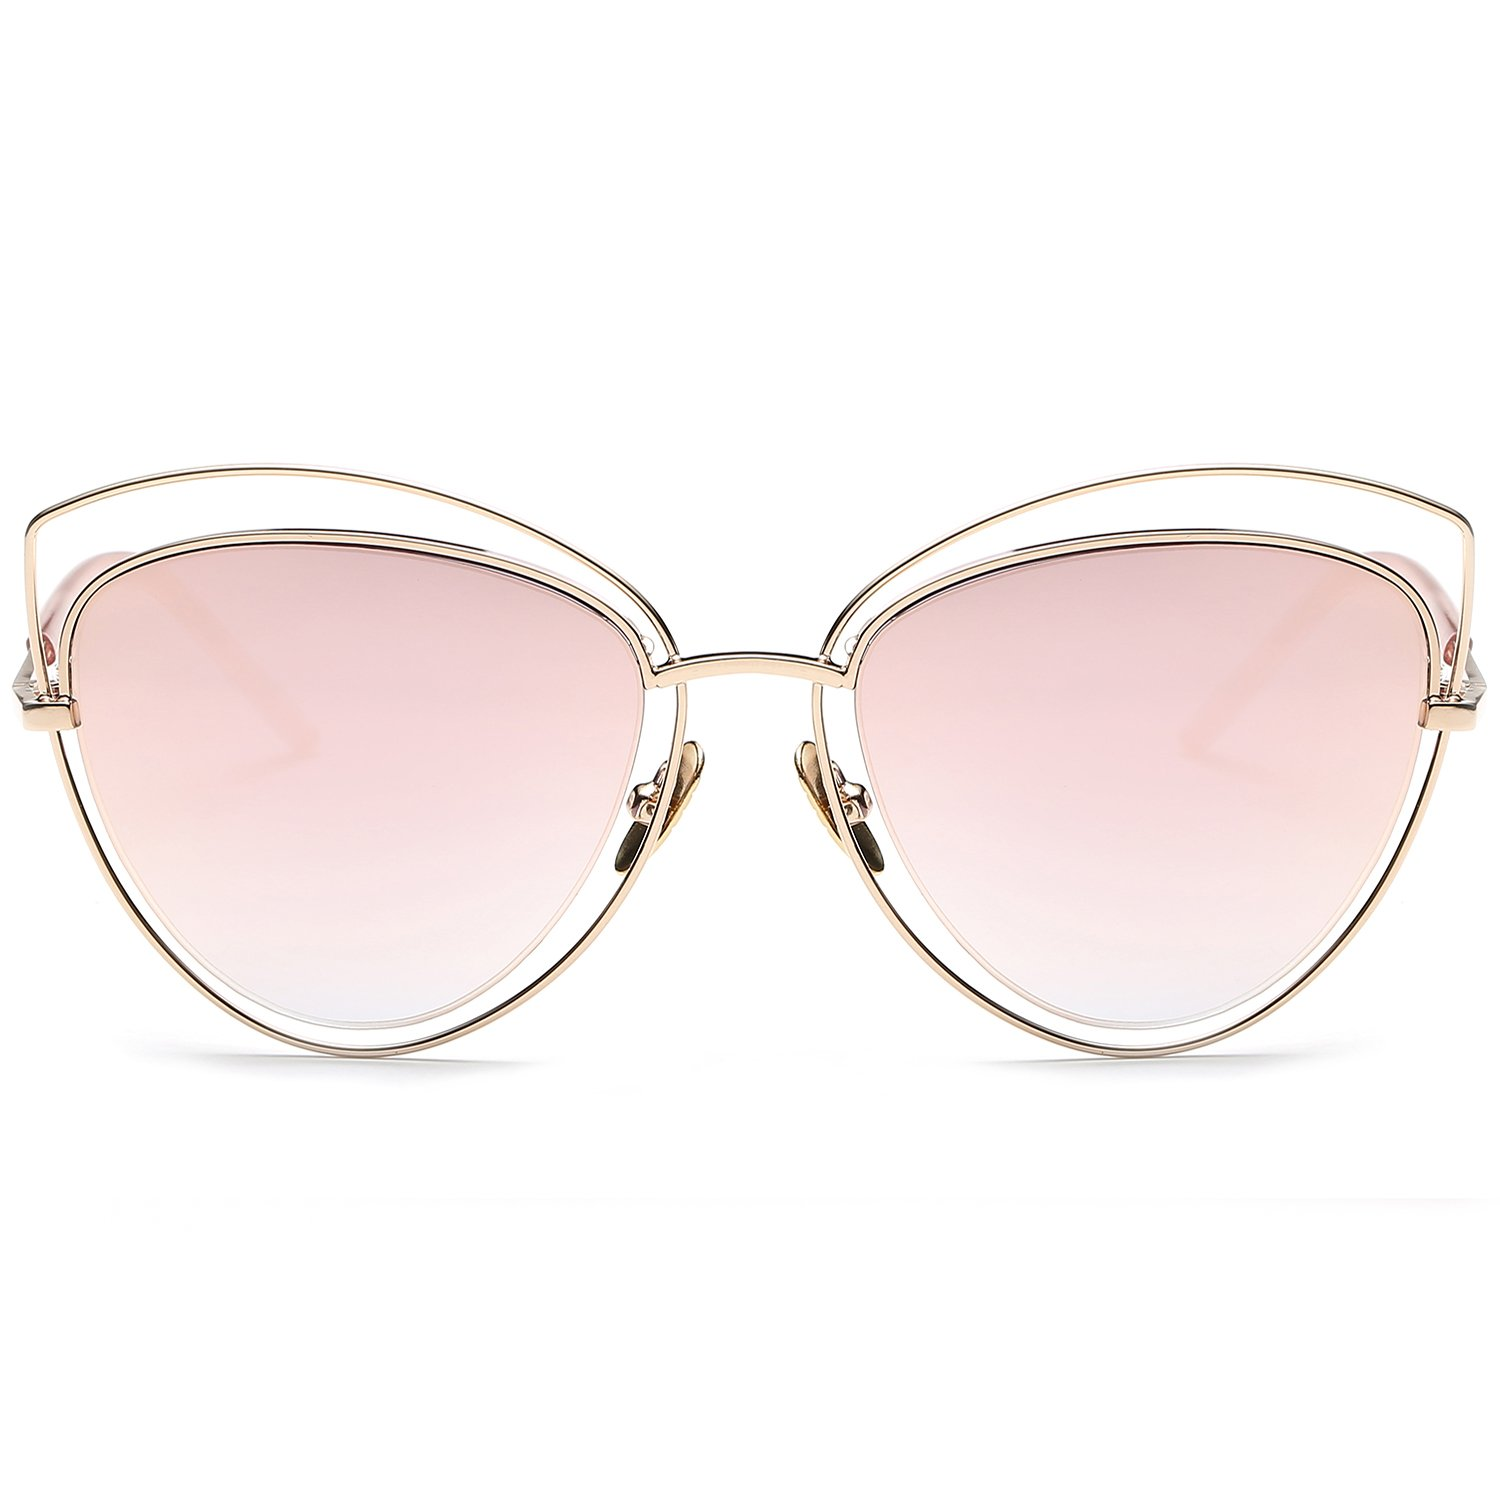 6f65ce816d SojoS Women s Double Wire Double Rimmed UV400 Cat Eye Sunglasses SJ1047  With Gold Frame Pink Lens